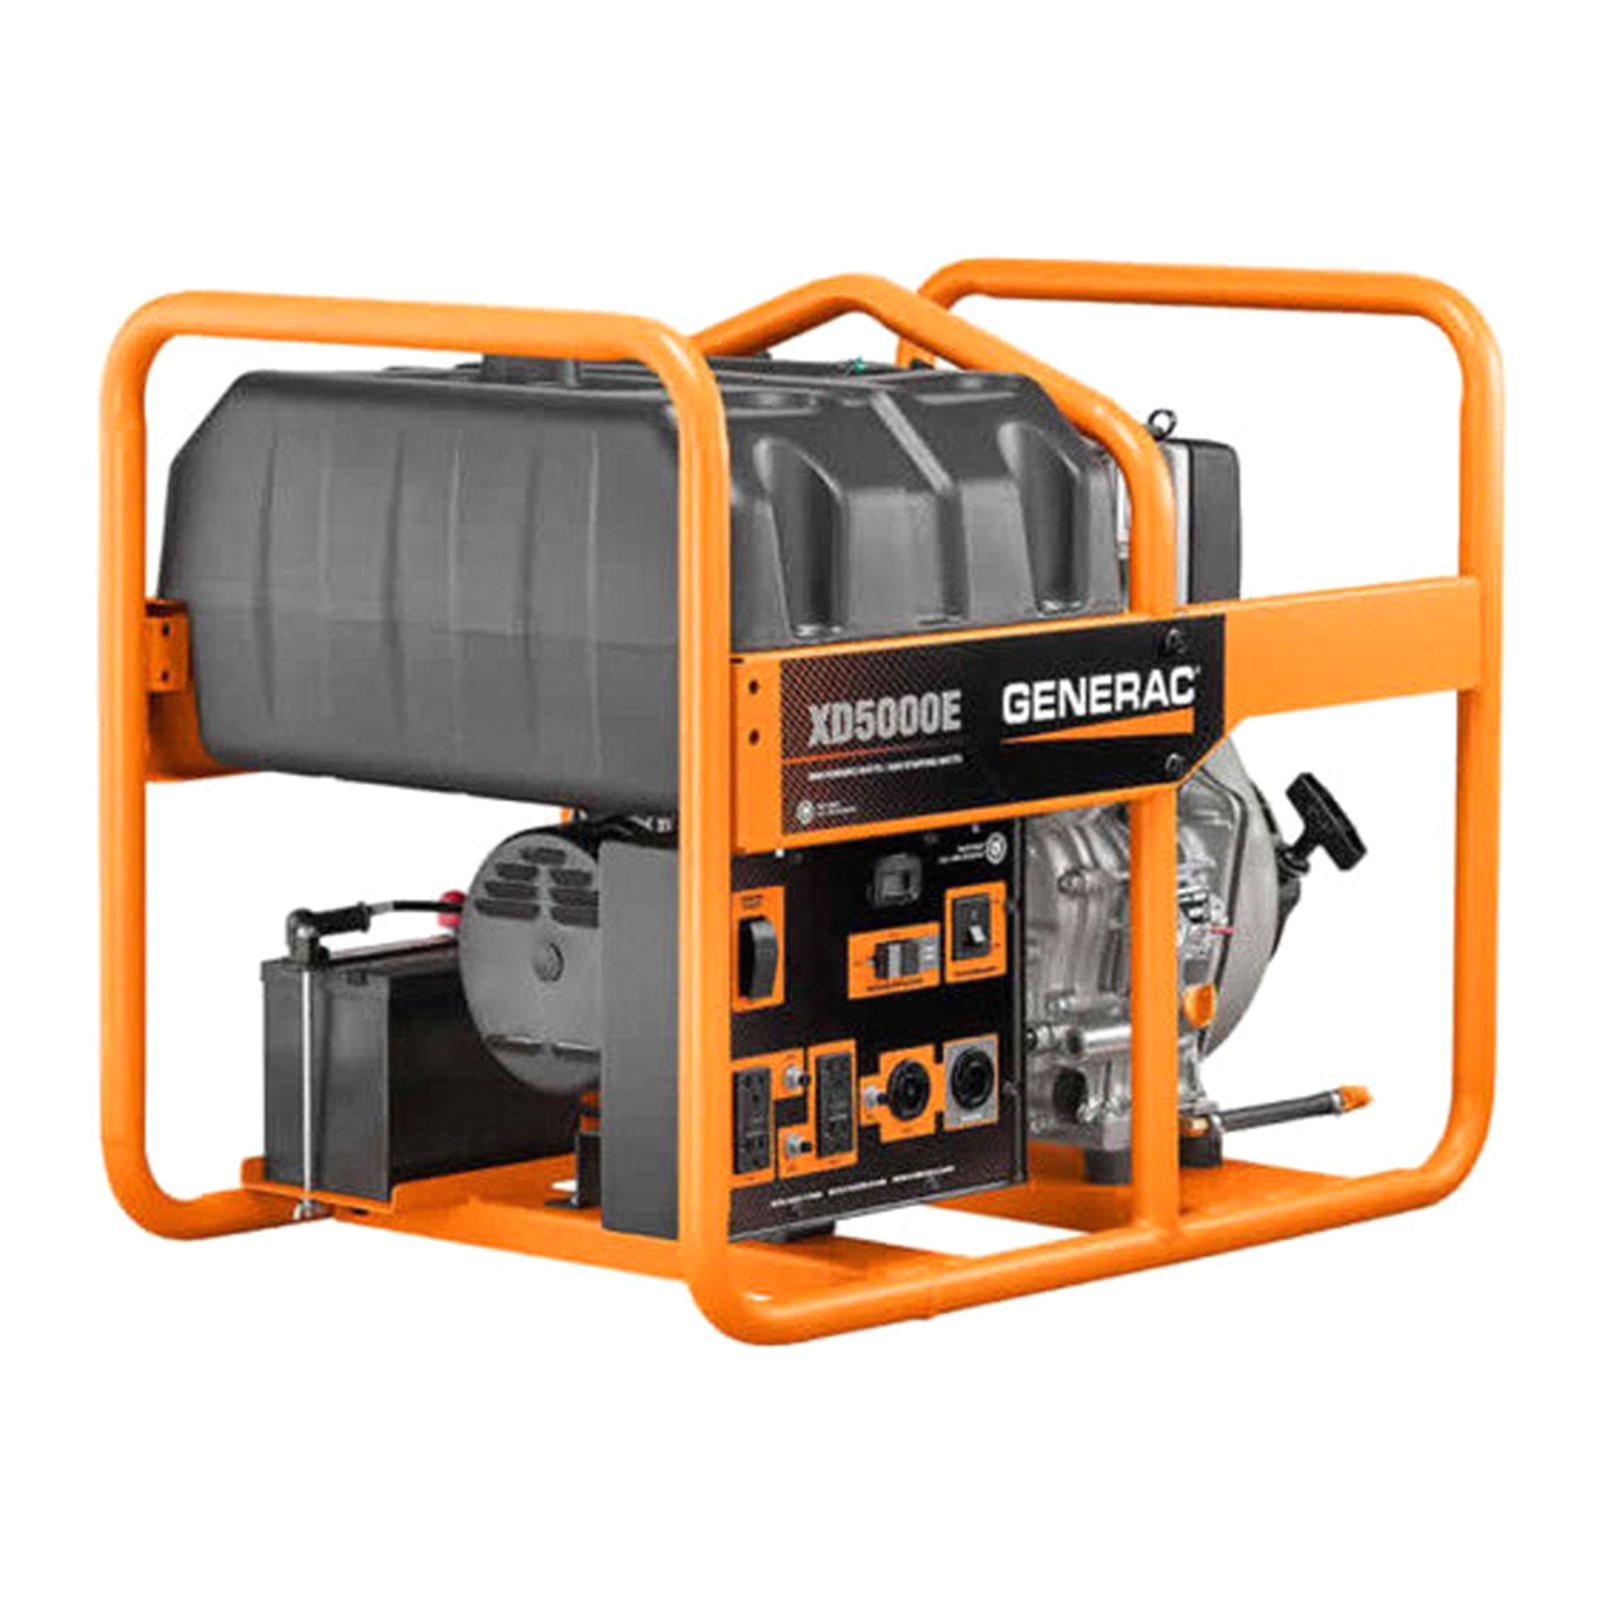 hight resolution of generac 6864 xd5000e 5000w electric start diesel portable generator